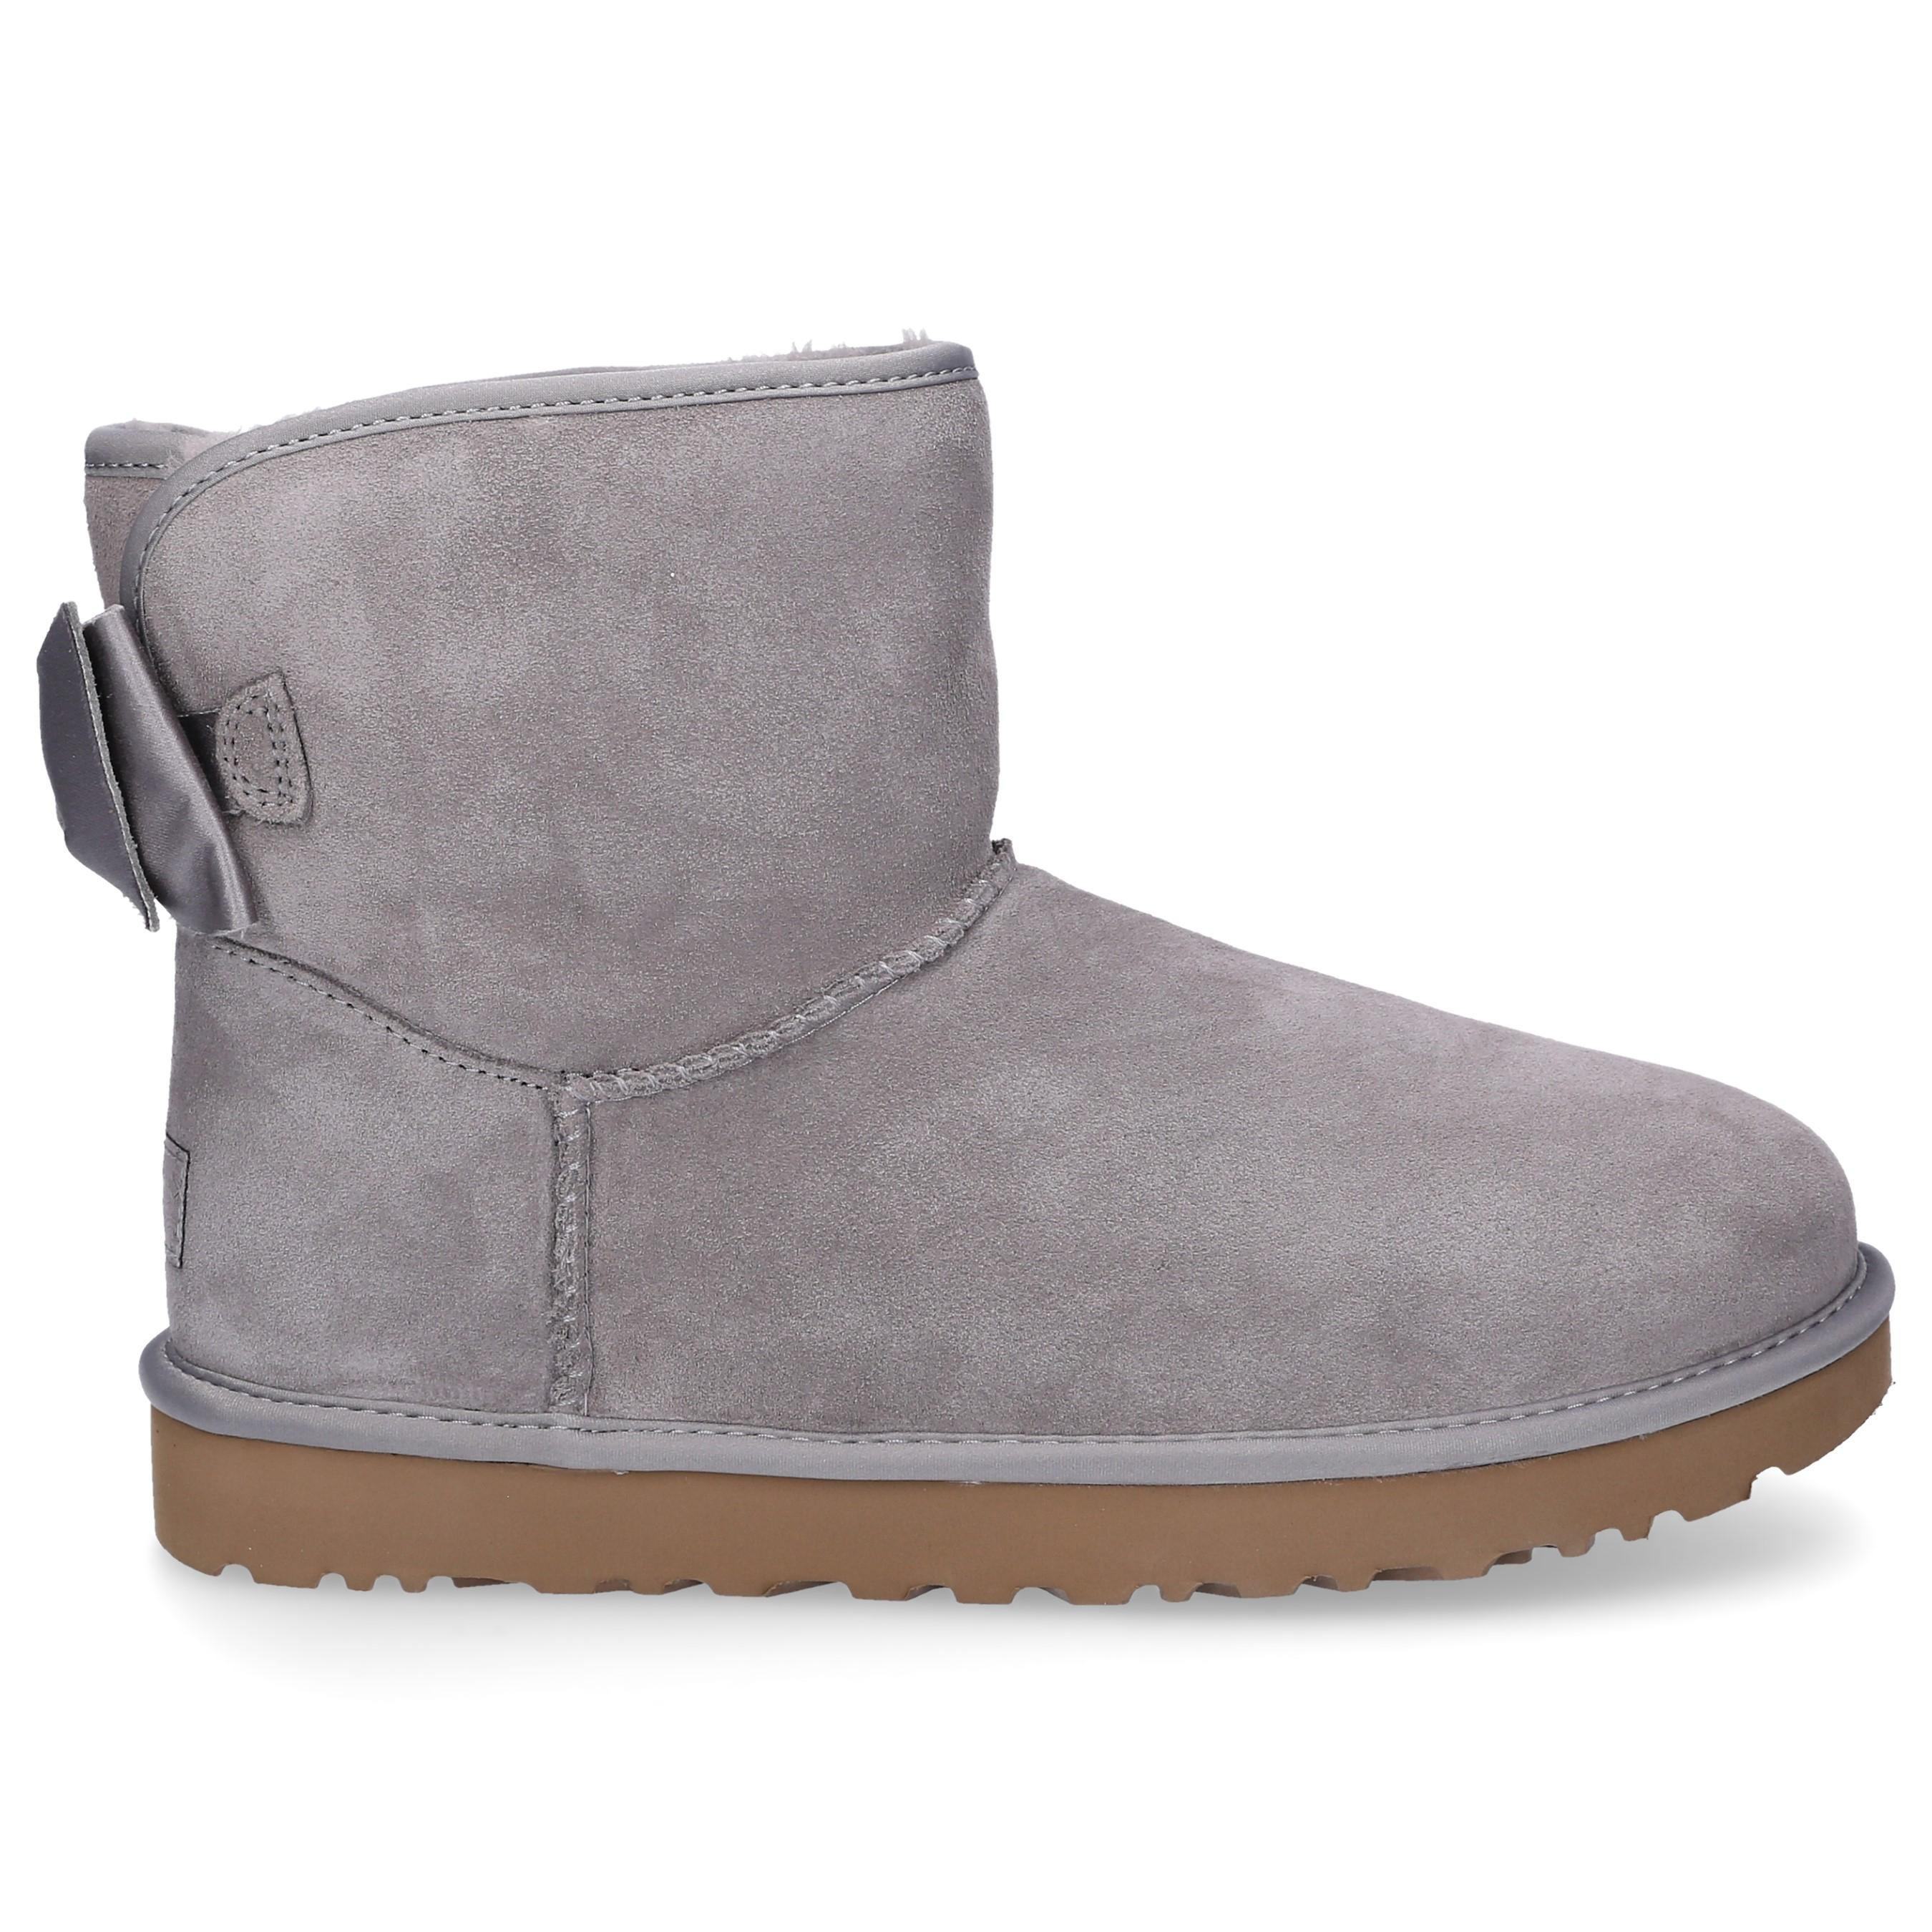 ecc0418f0ad UGG Ankle Boots Satin Bow Suede Logo Ribbon Grey in Gray - Lyst